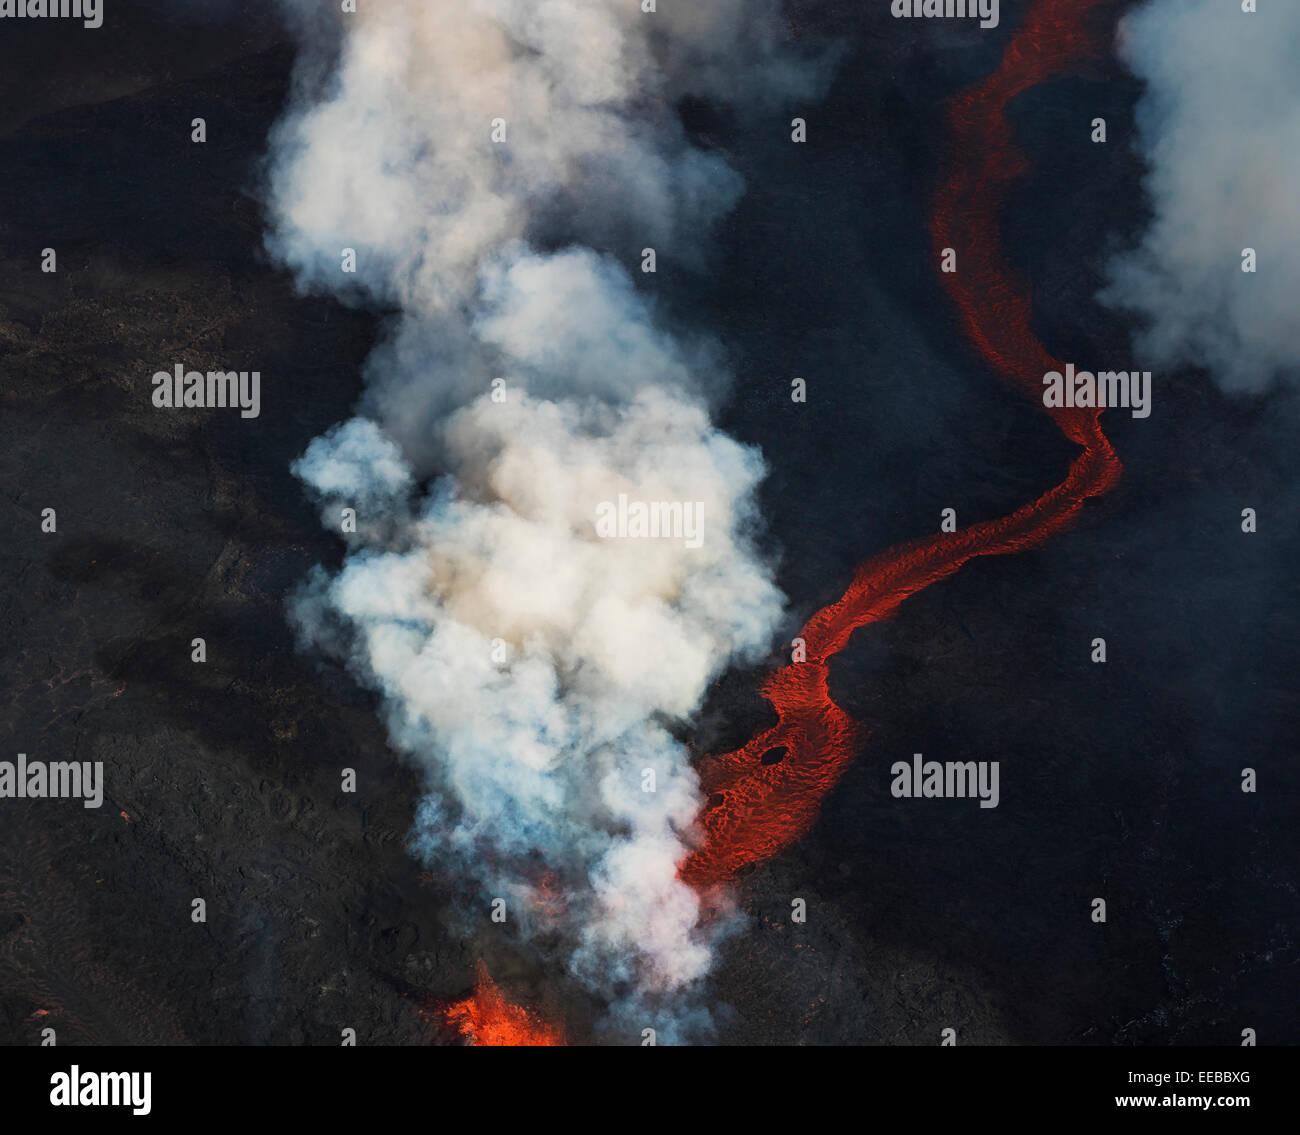 Volcano Eruption at the Holuhraun Fissure near the Bardarbunga Volcano, Iceland - Stock Image